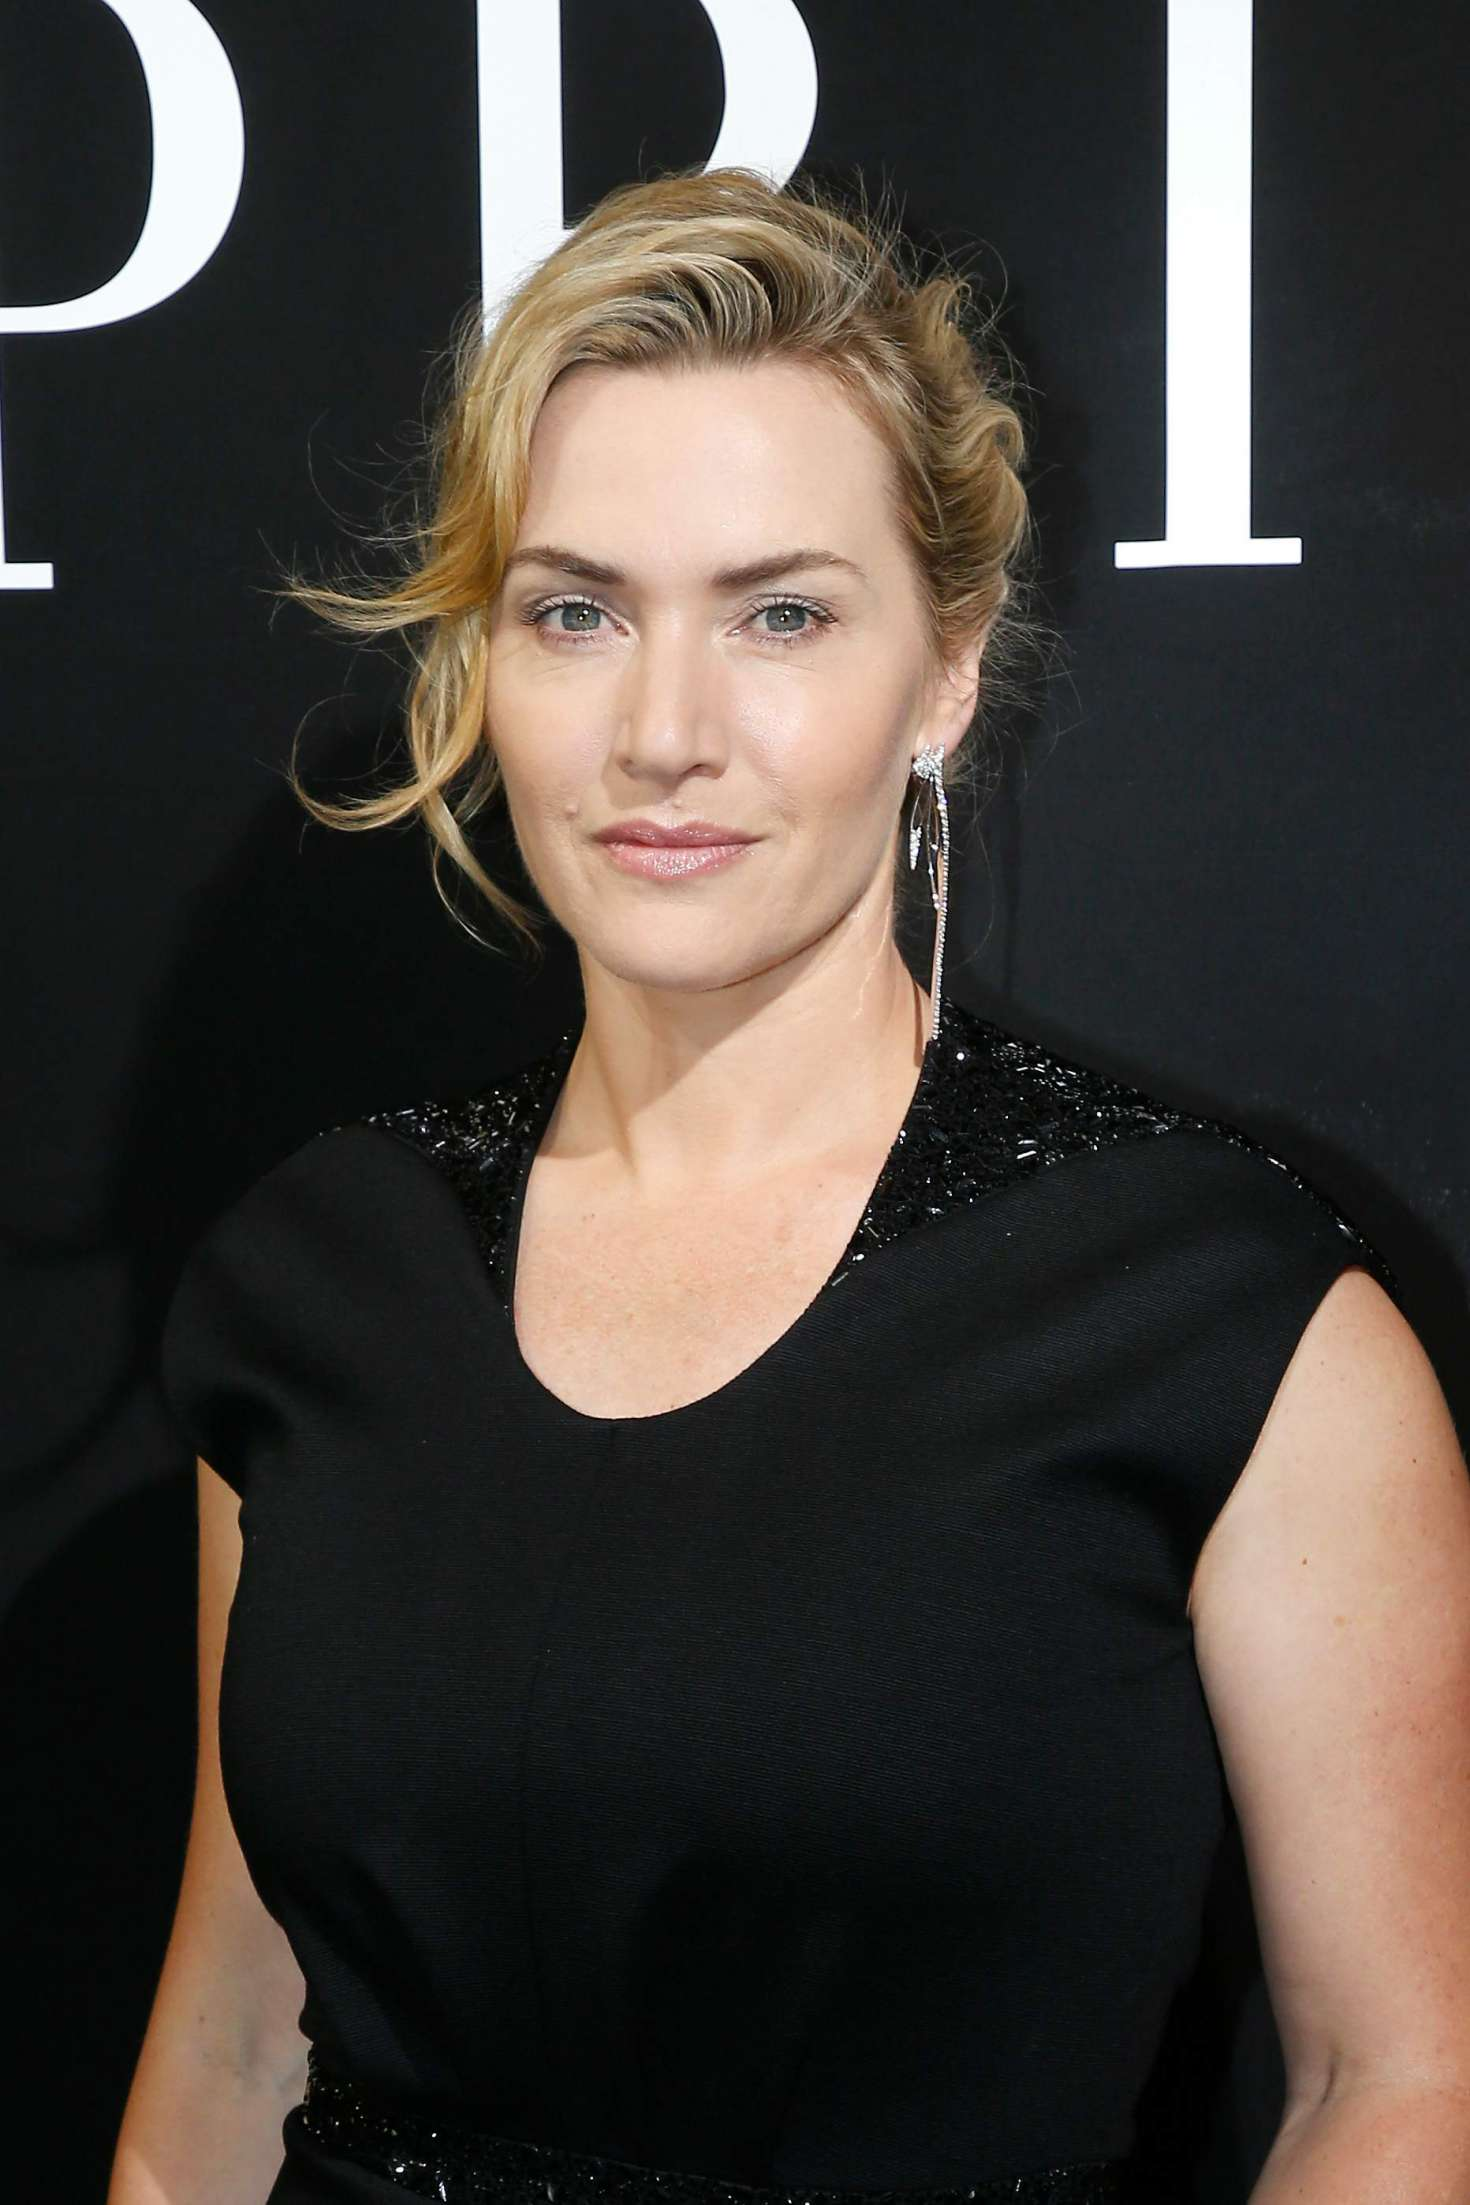 Kate Winslet Giorgio Armani Fashion Show 2017 07 30 Things You Didn't Know About Harry Potter and The Deathly Hallows